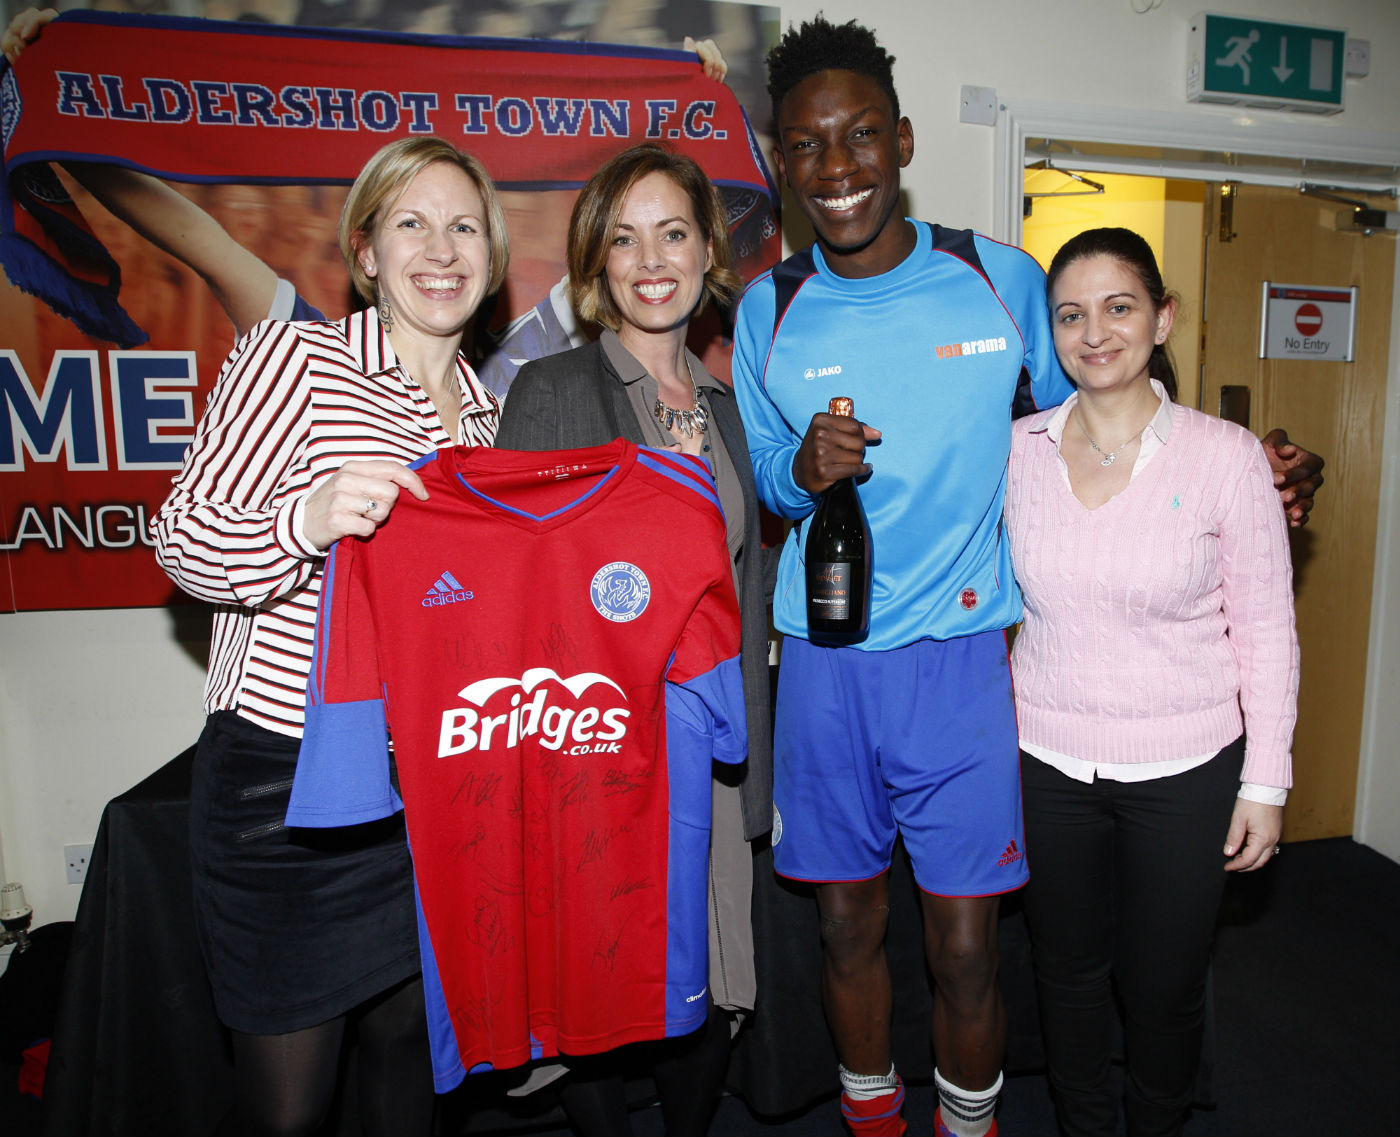 Reade Signs match sponsors for Aldershot v Lincoln game